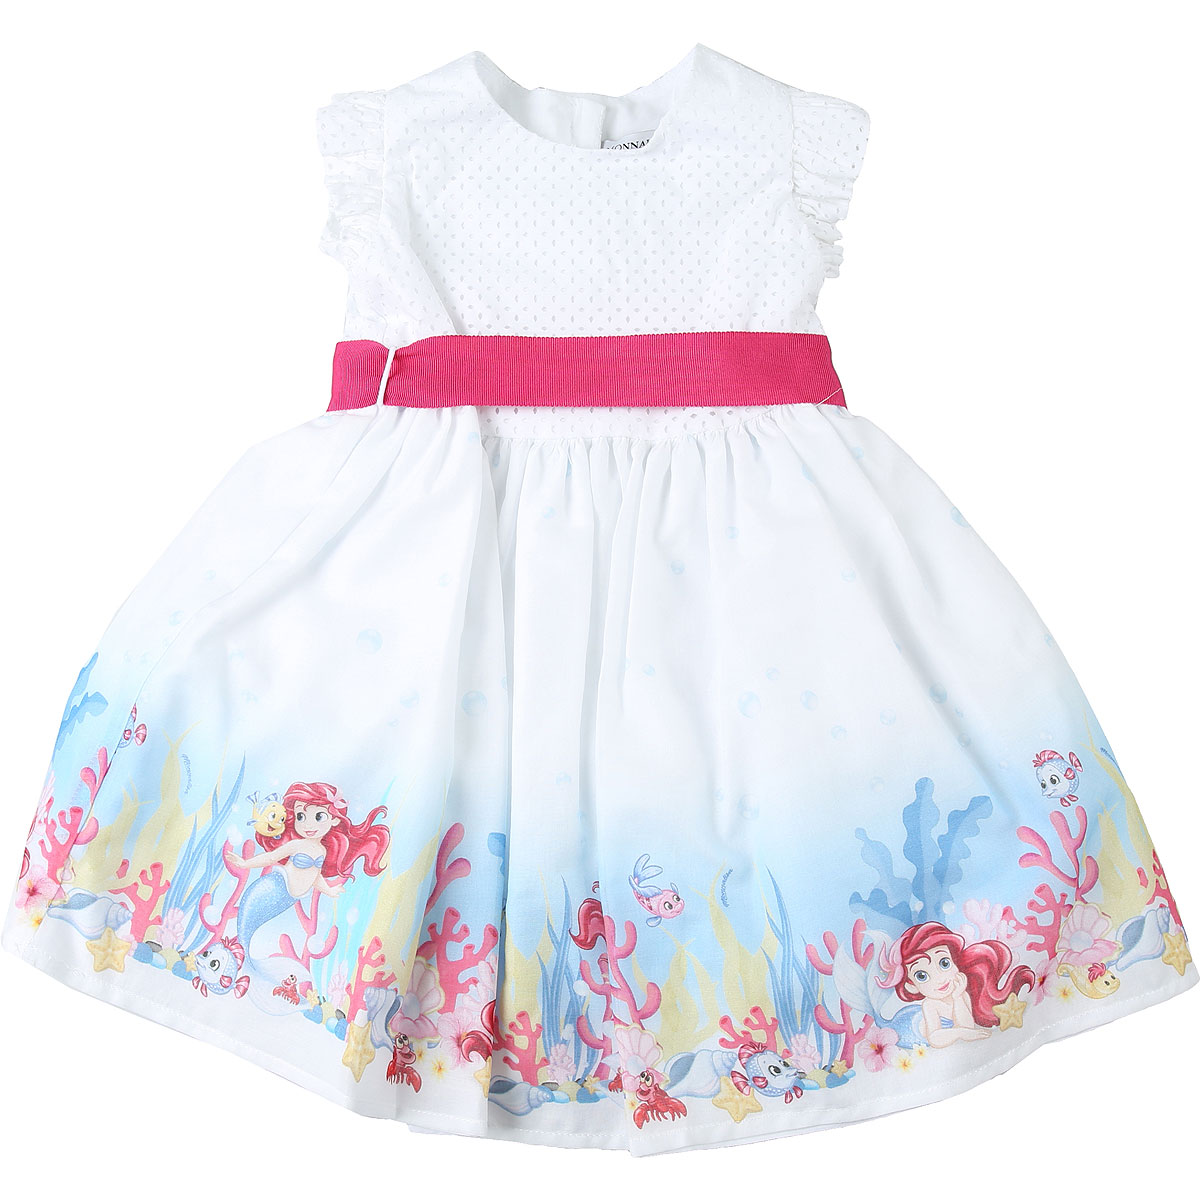 Monnalisa Baby Dress for Girls On Sale in Outlet, White, Cotton, 2019, 12M 18M